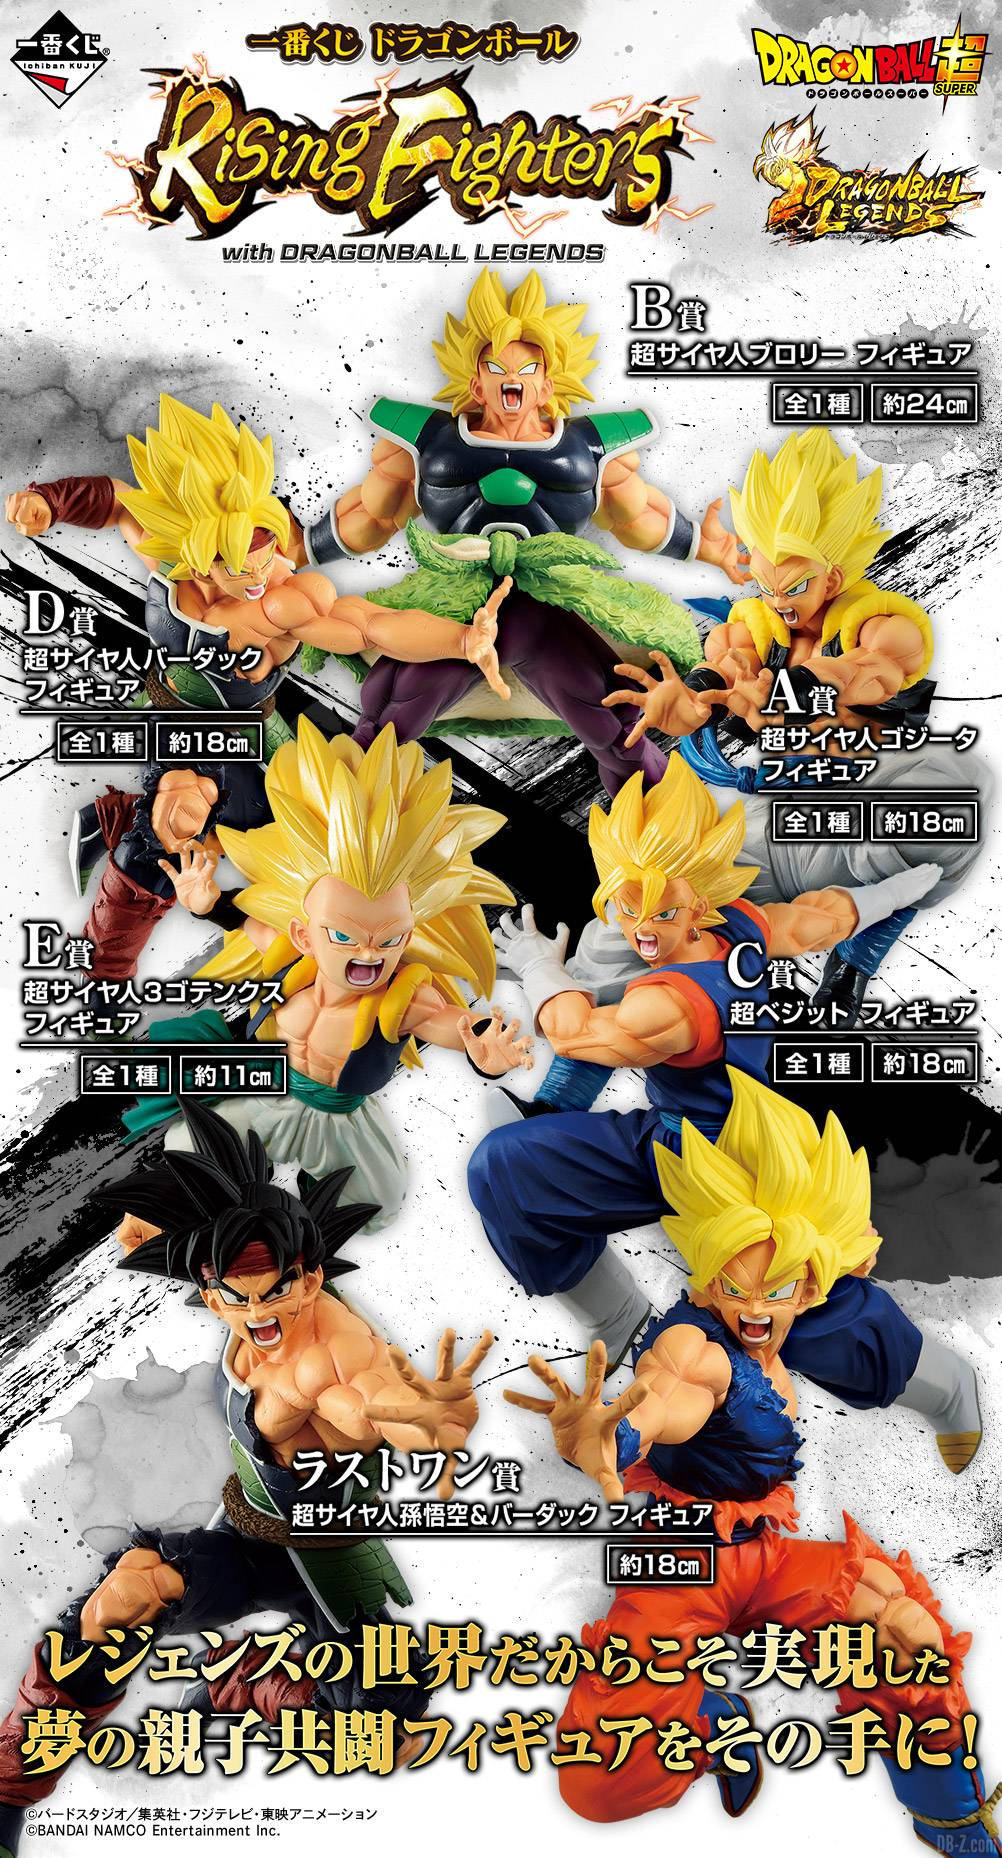 Promo Ichiban Kuji Dragon Ball Rising Fighters with DRAGONBALL LEGENDS